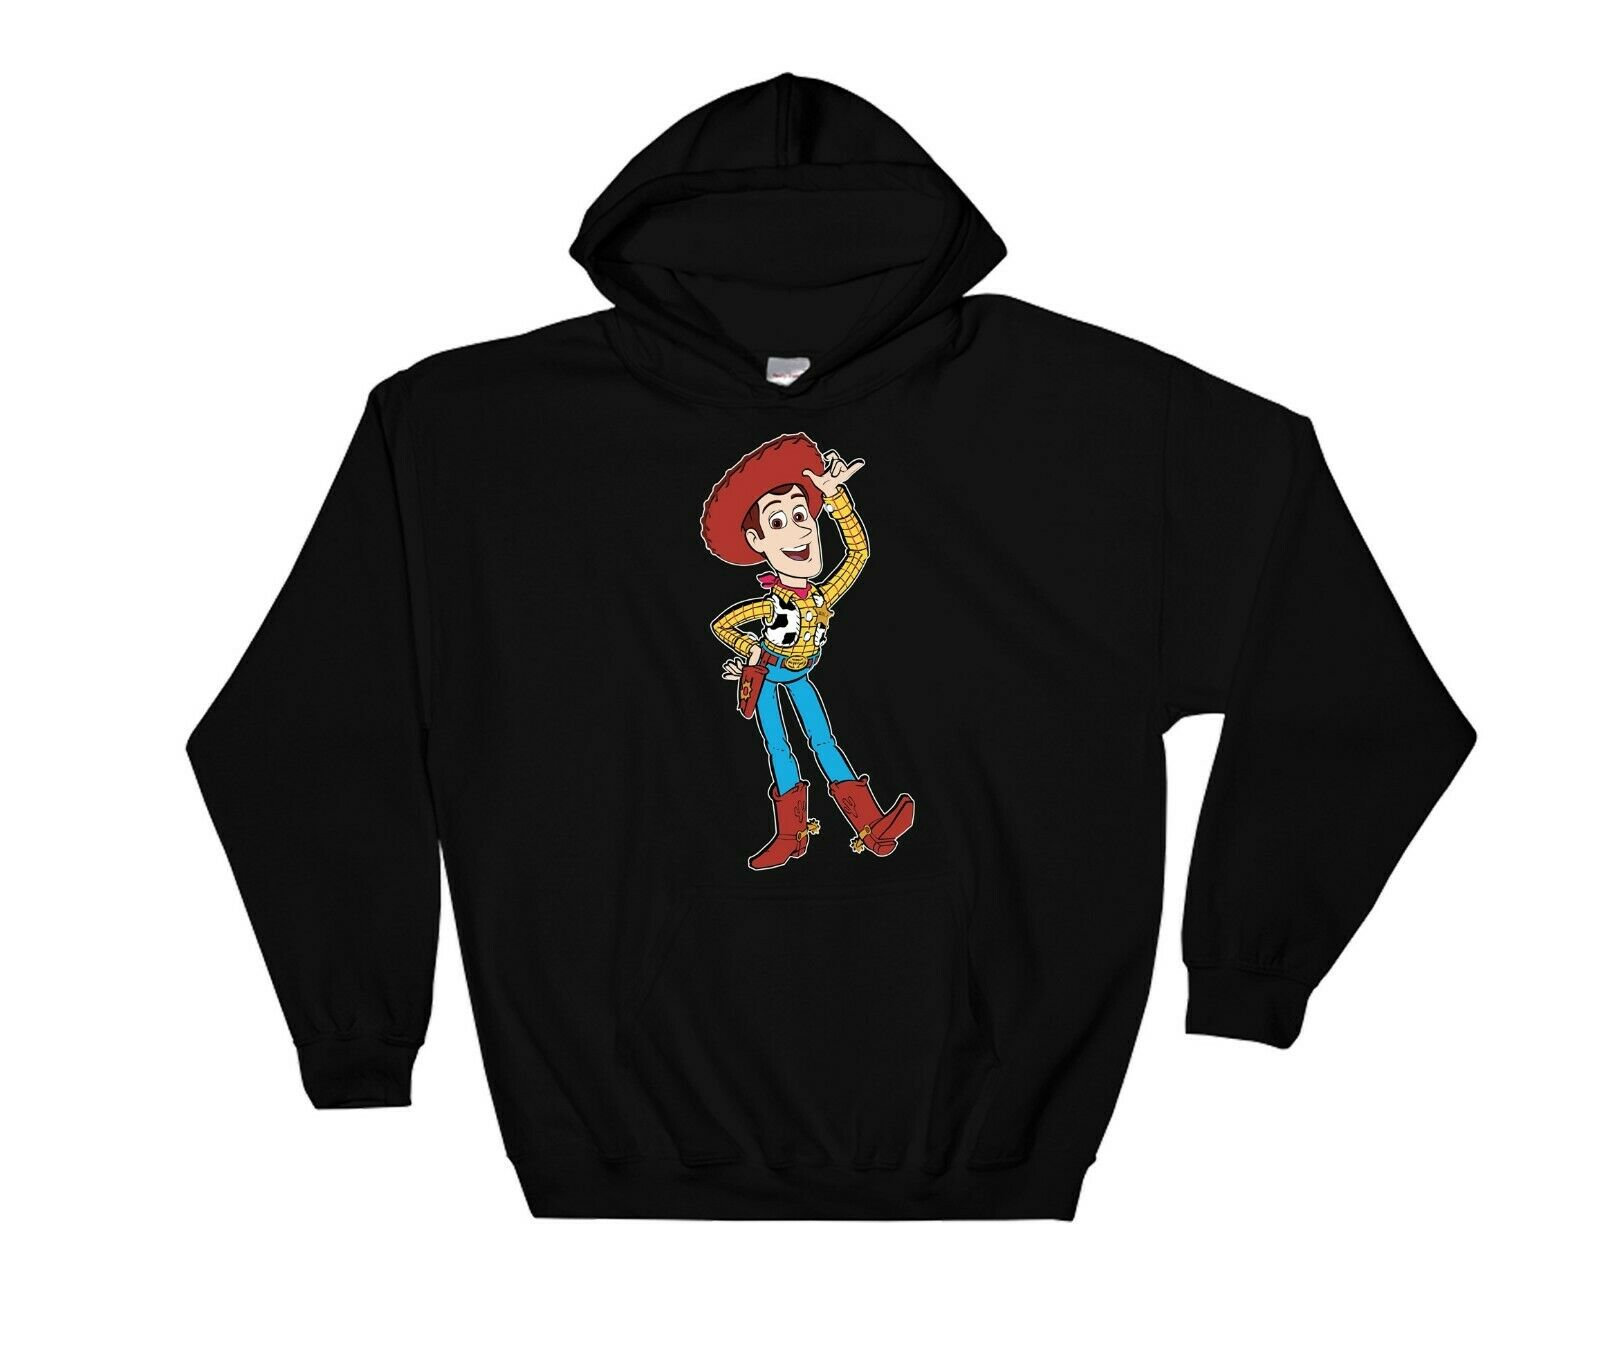 Toy Story Sheriff Woody Funny Hoodie Cool Gift Sweatshirt Jumper Pullover 4123